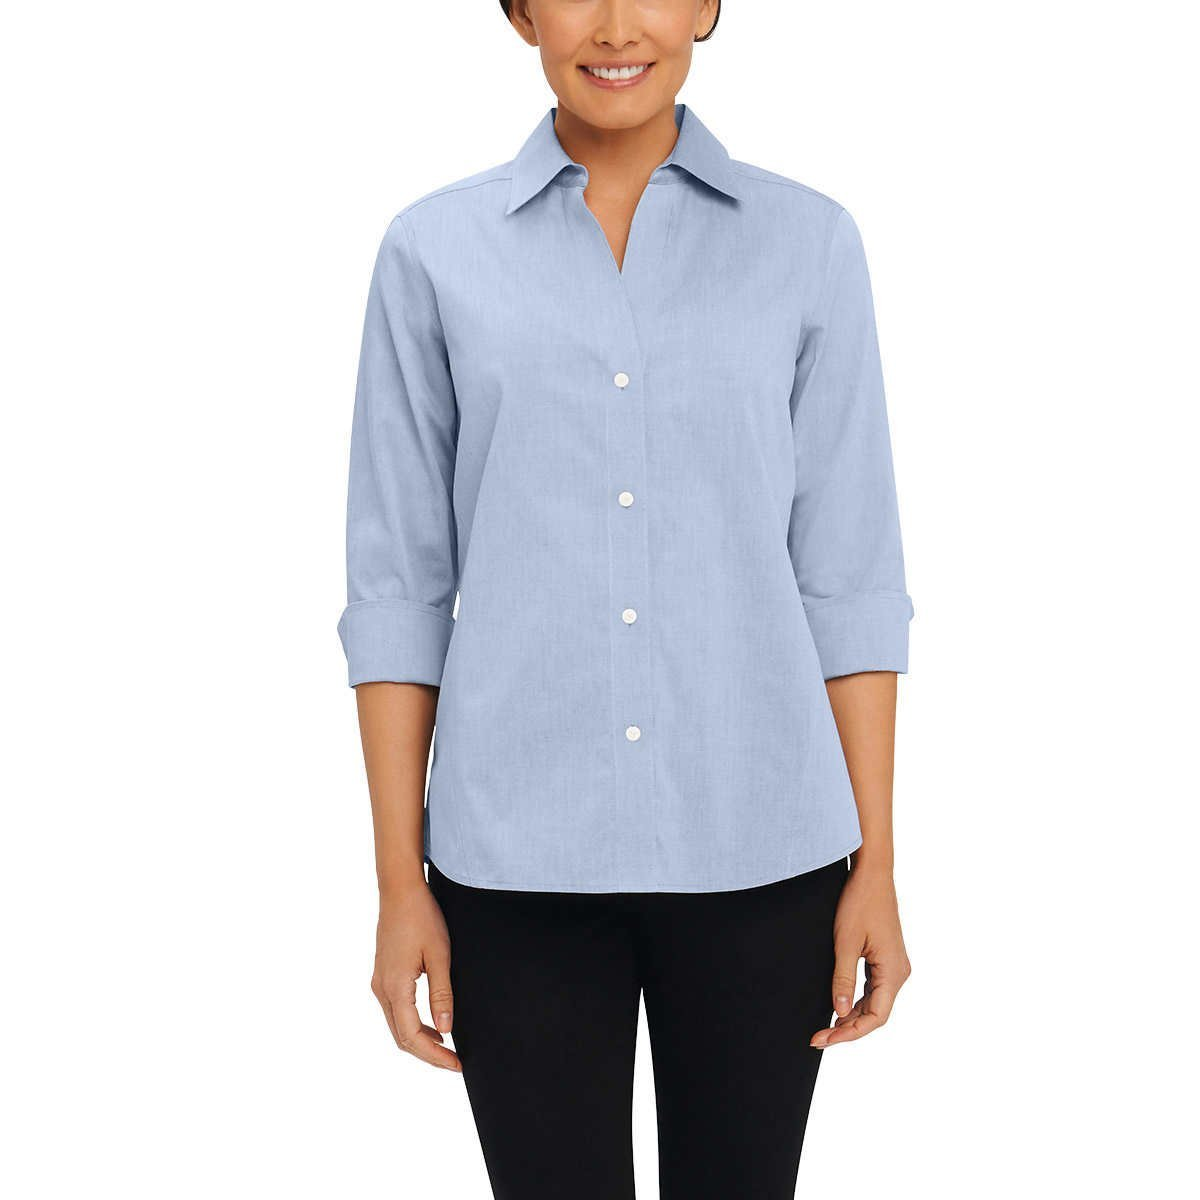 Foxcroft Women's Non-Iron Essential Paige Shirt For Women Blue Wave - Small